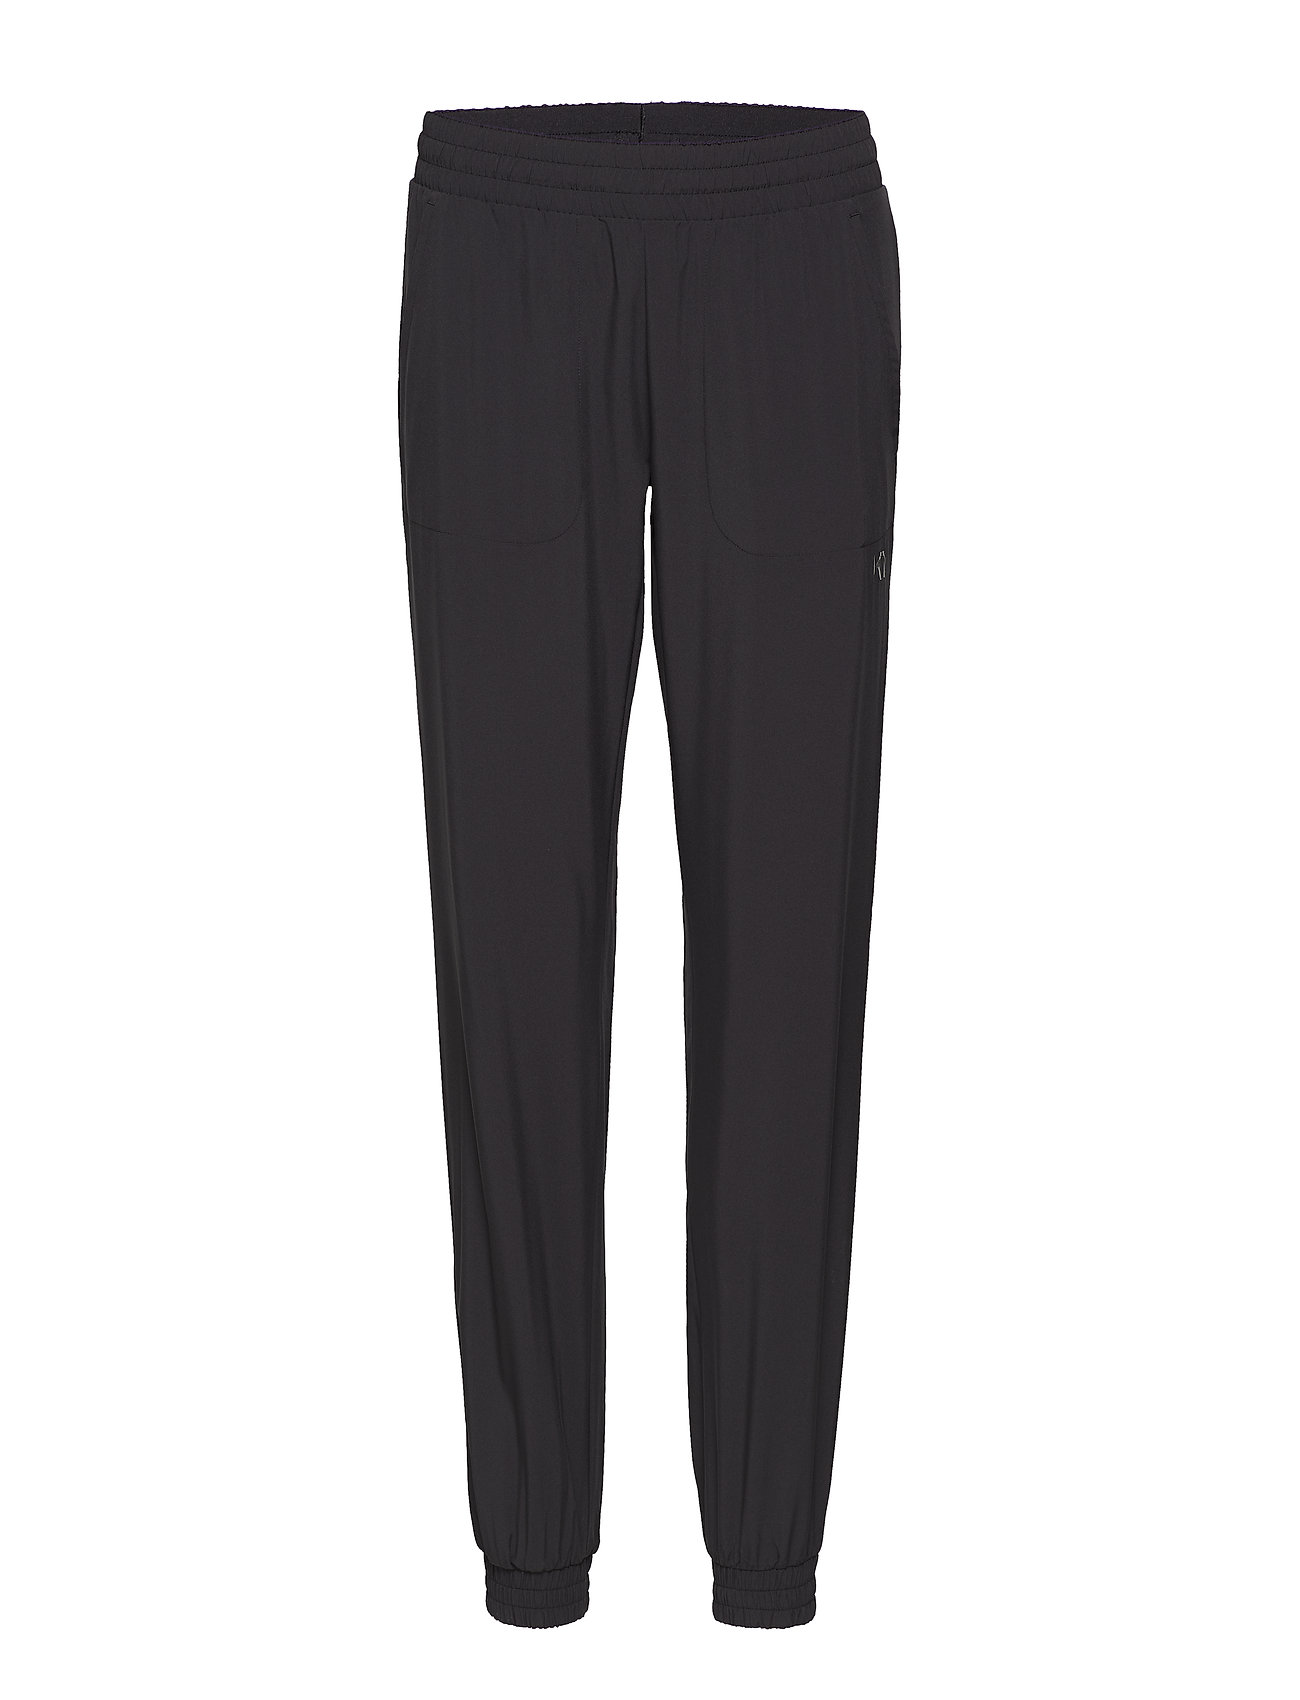 Kari Traa NORA PANTS - BLACK